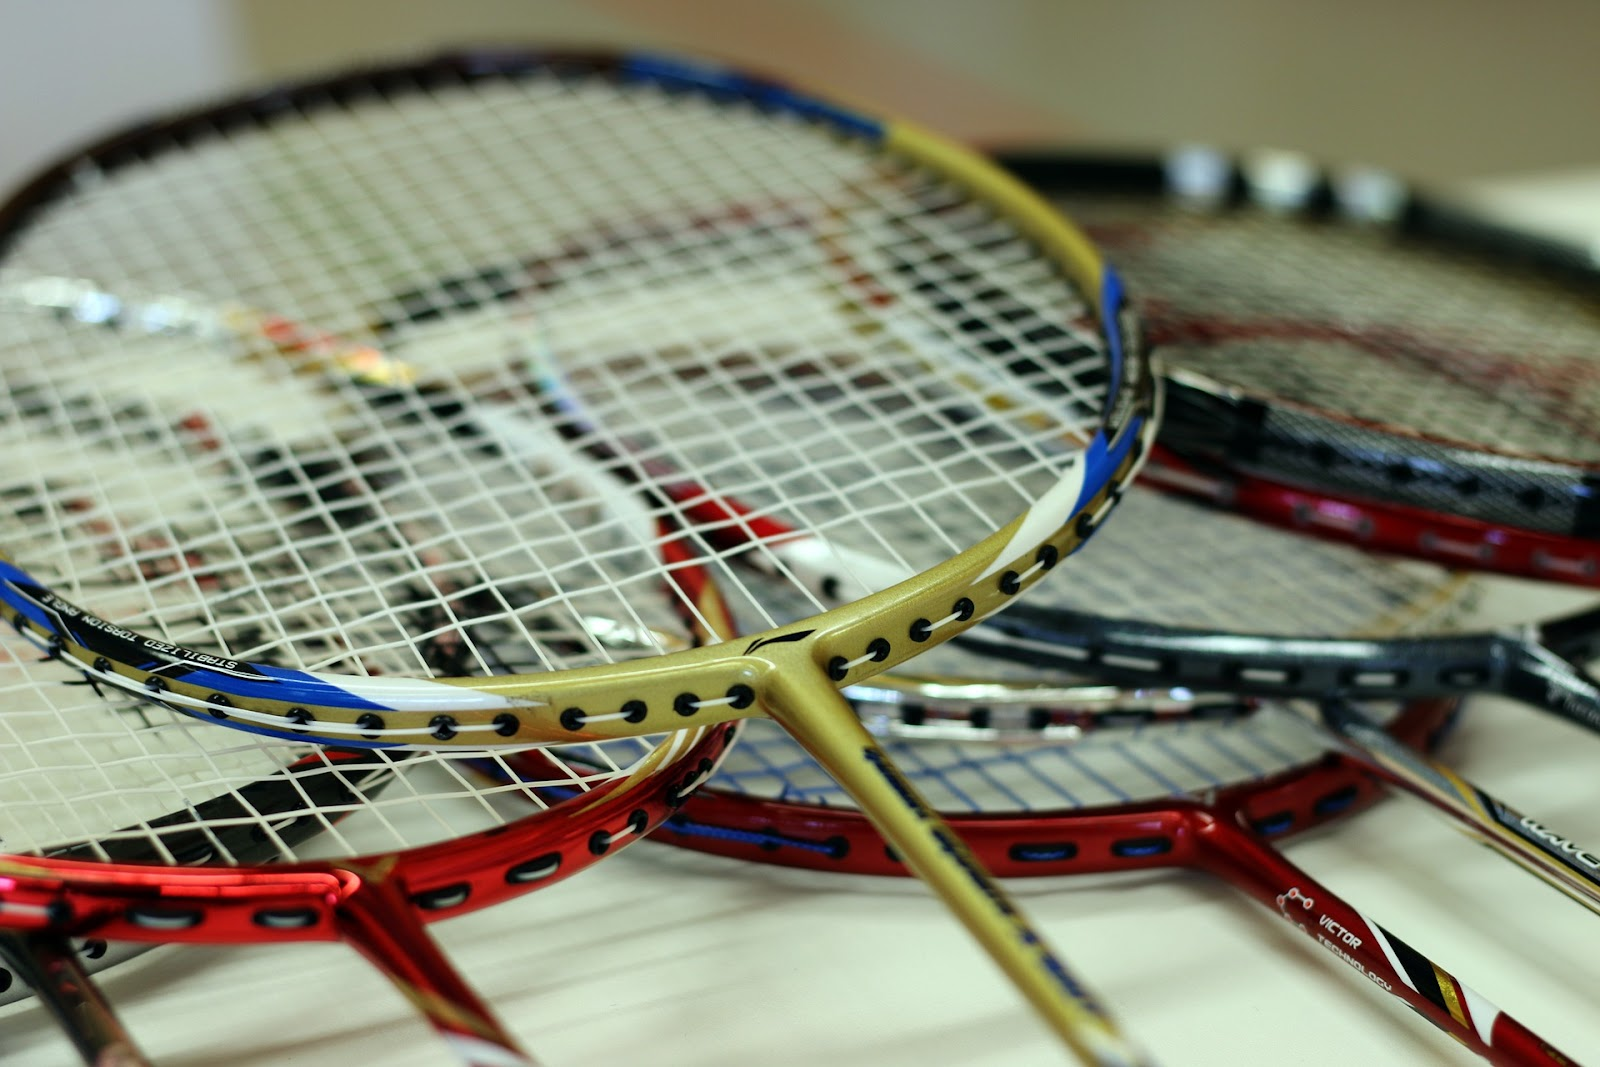 This image has 6 badminton rackets, which would fit nicely into some of the badminton racket bags reviewed in this blog post.